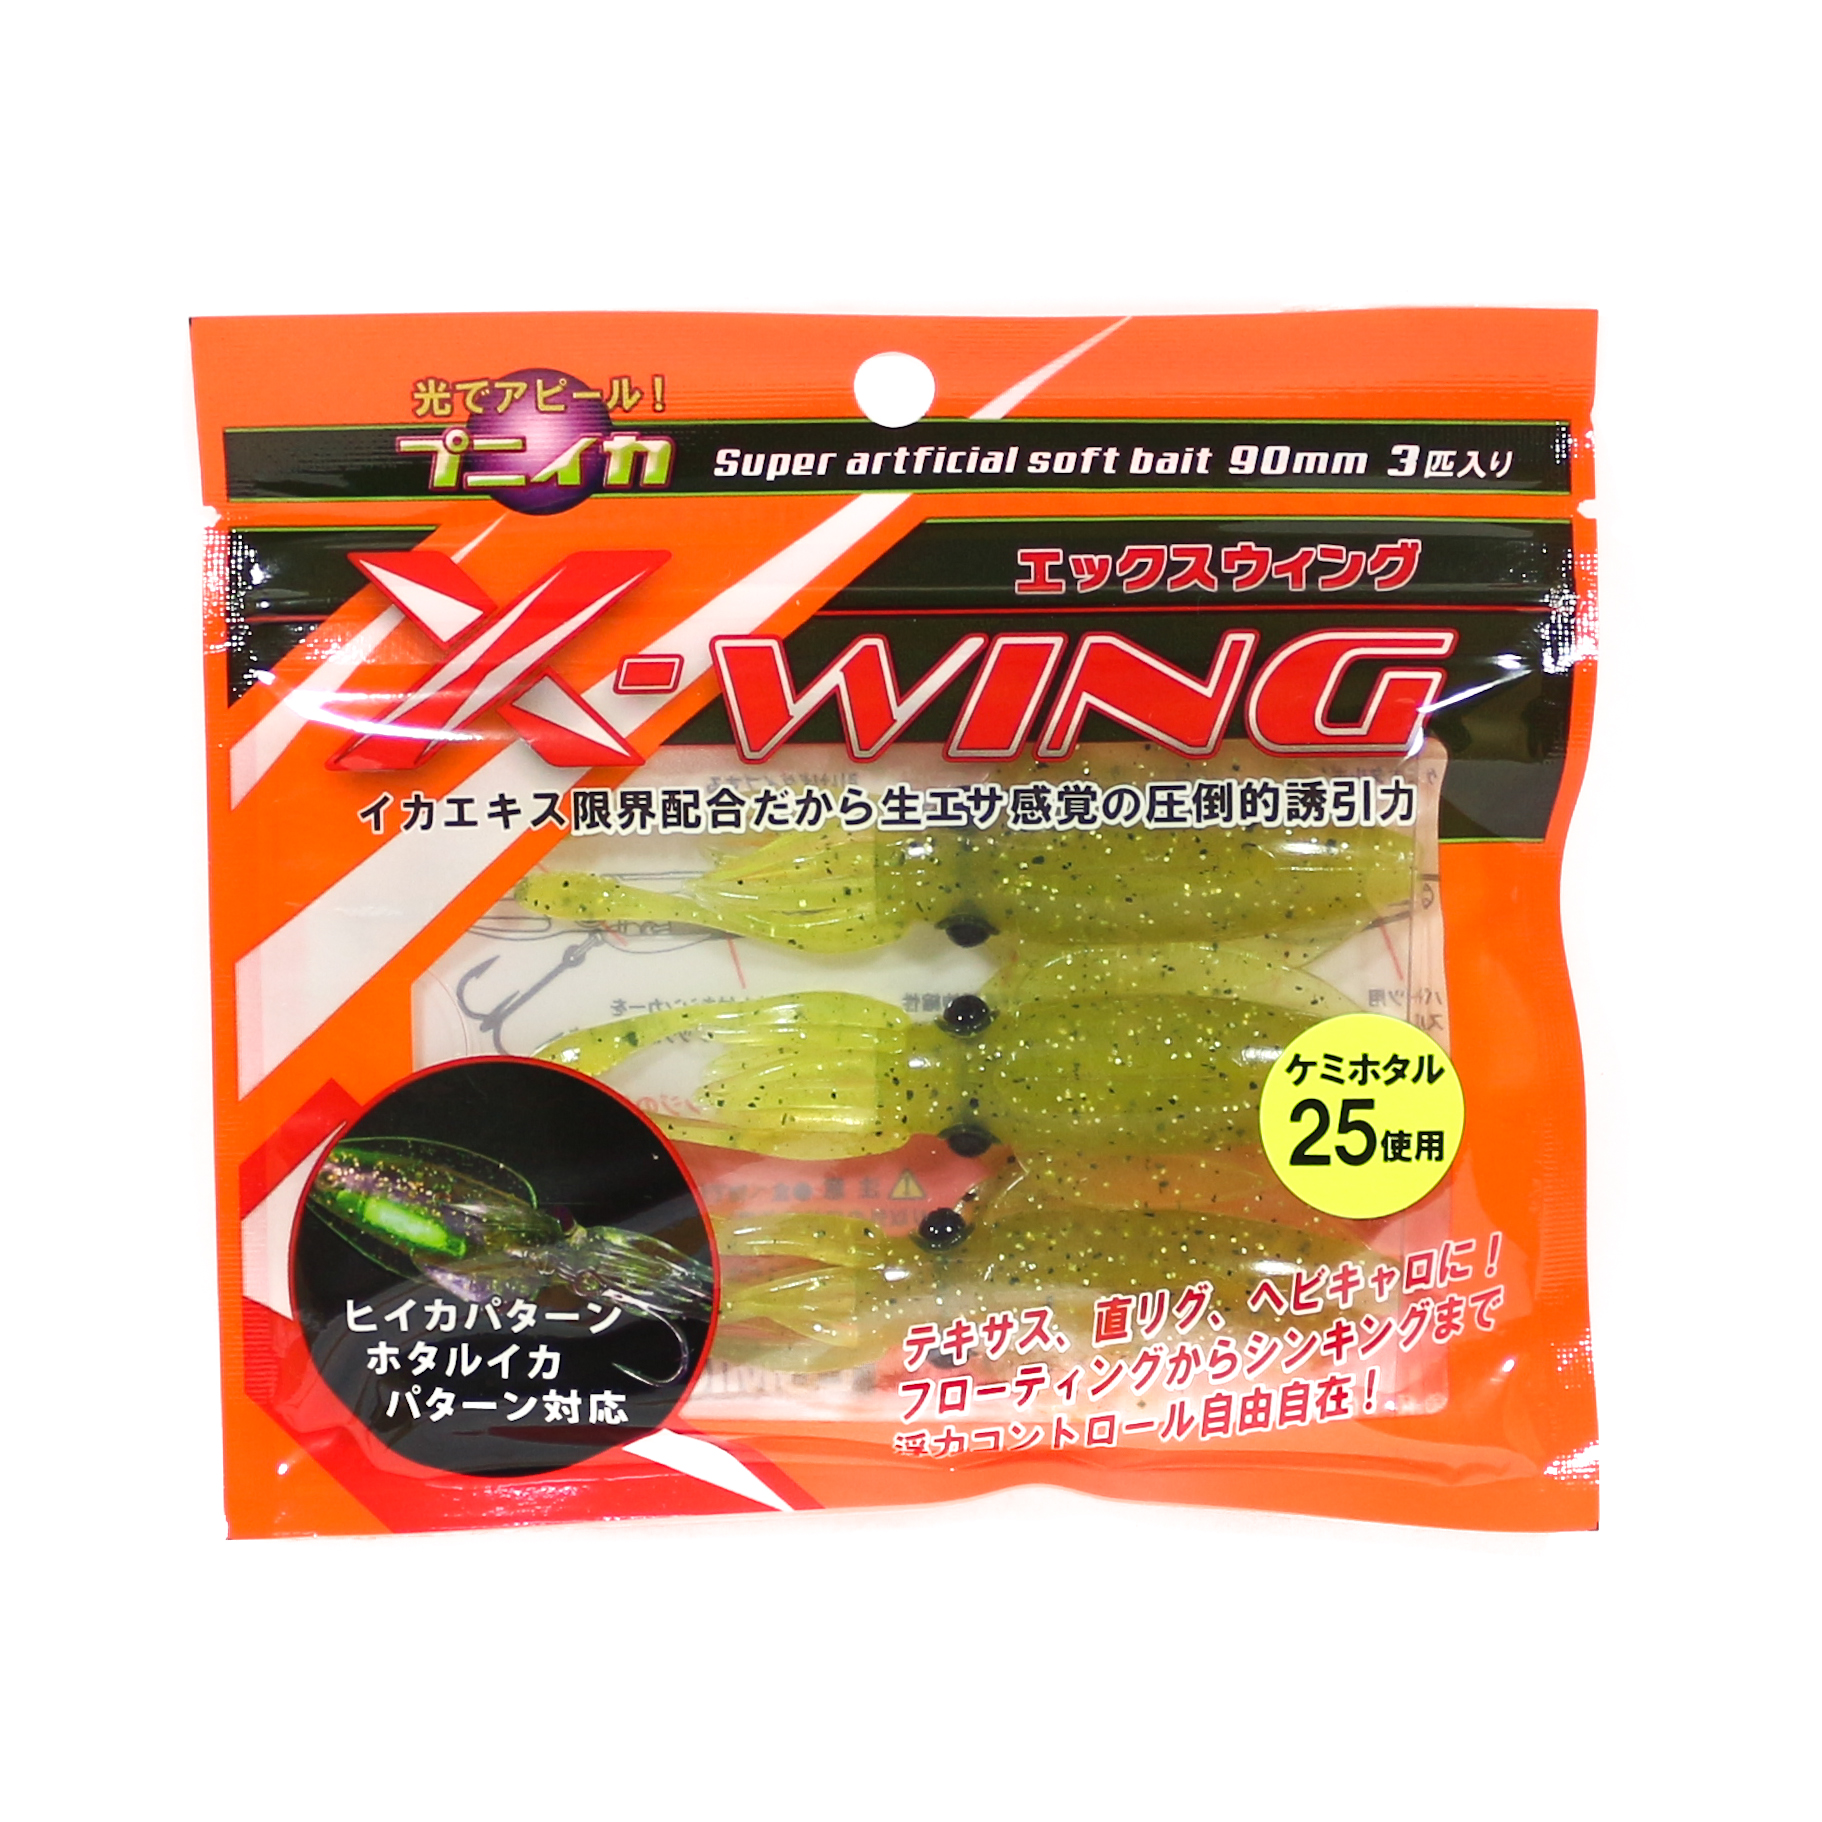 Lumica Soft Lure Puniika X Wing 90mm 3 Pieces Per Pack 123 (3635)